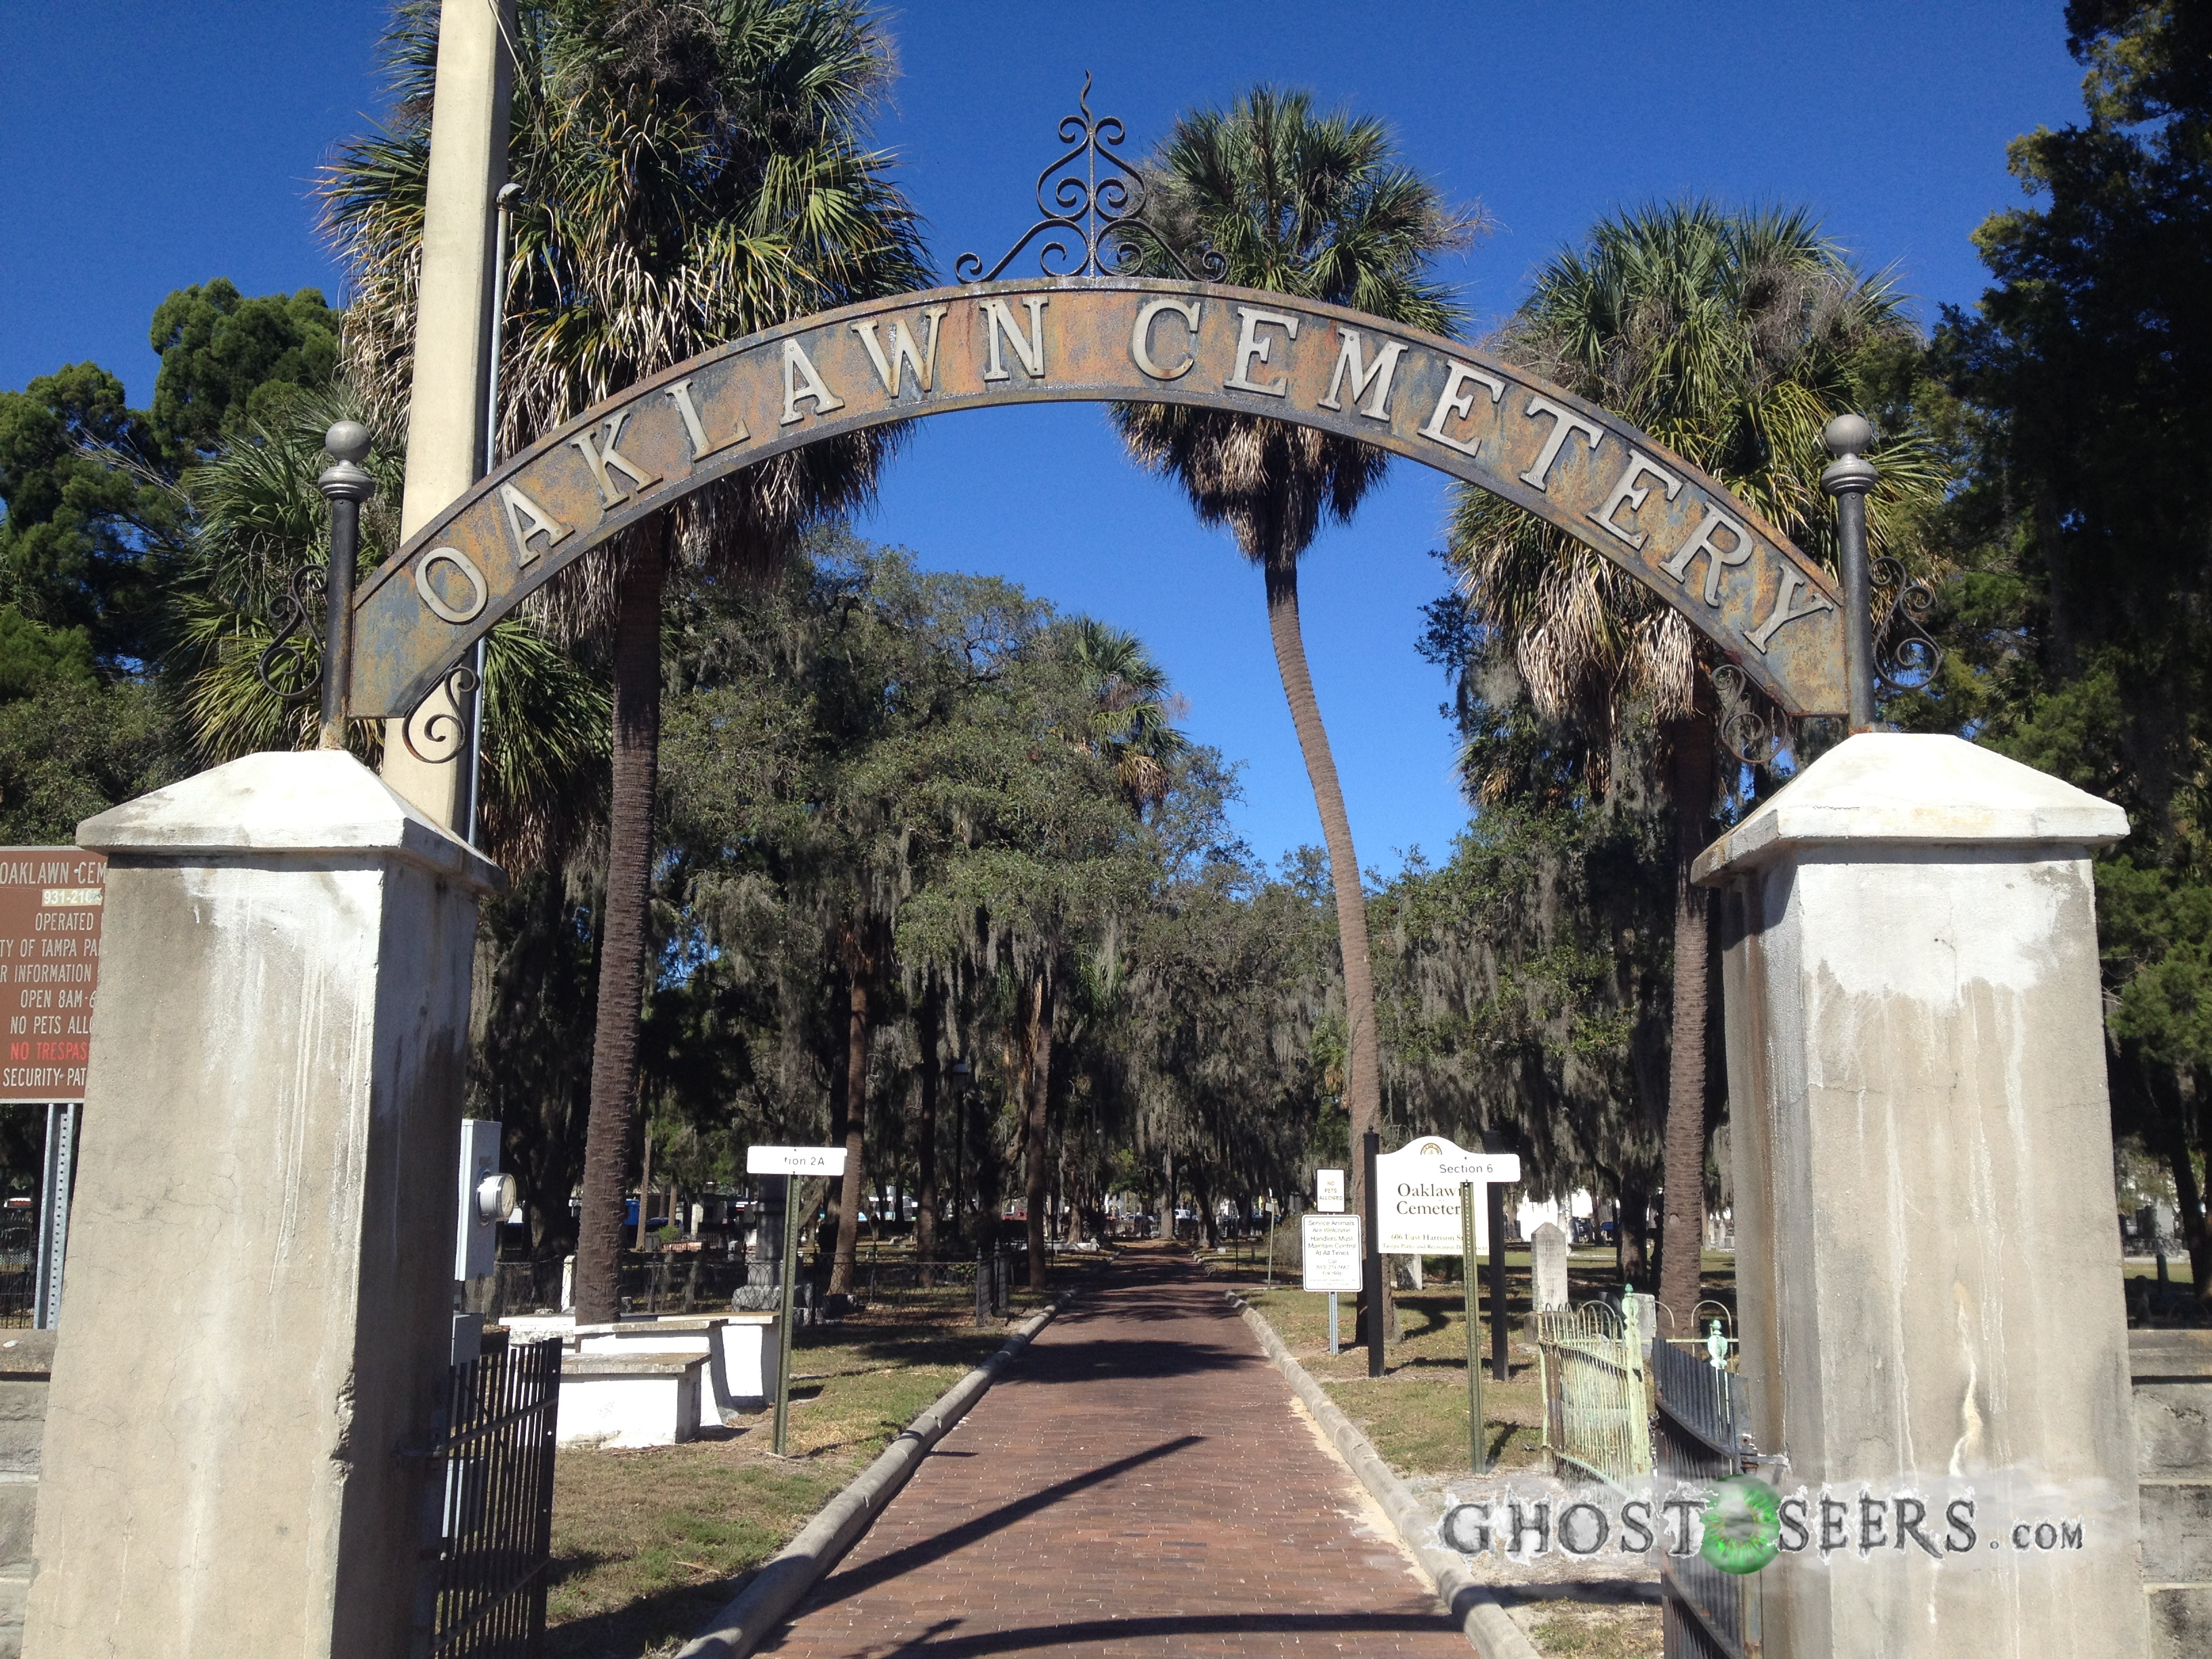 Tampa's Haunted Oaklawn Cemetery